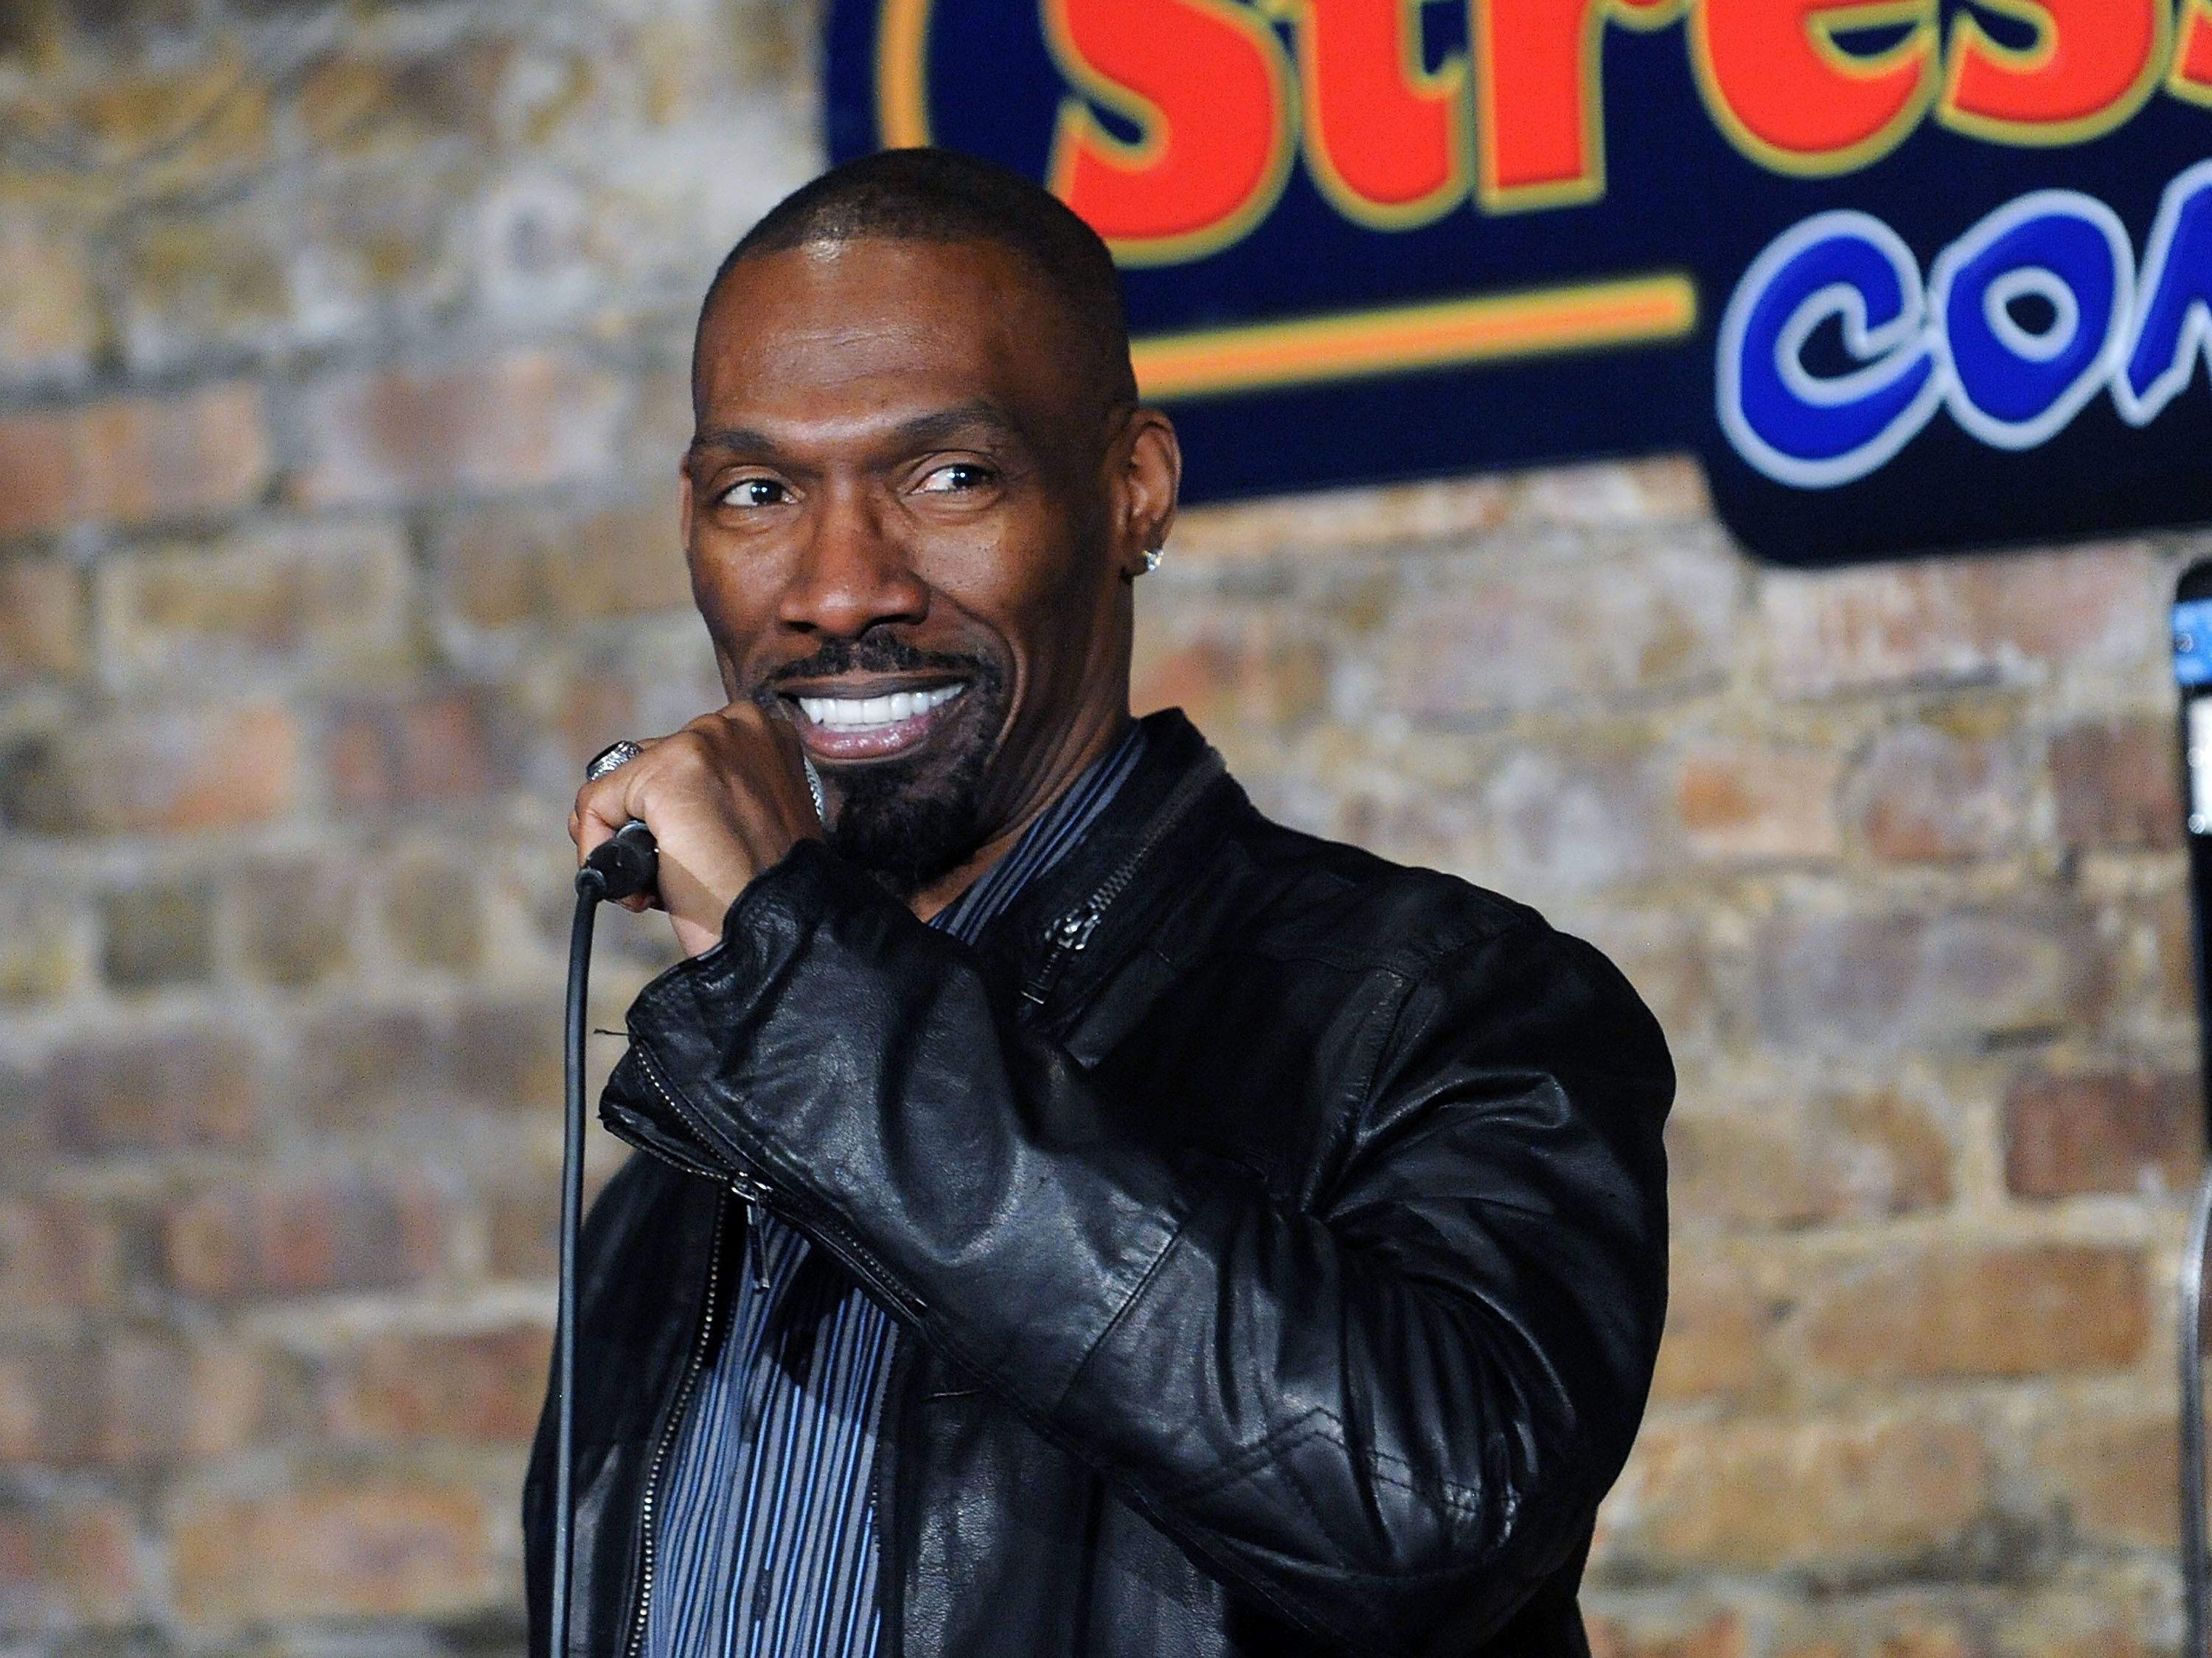 Charlie Murphy performing at the Stress Factory Comedy Club in 2014.